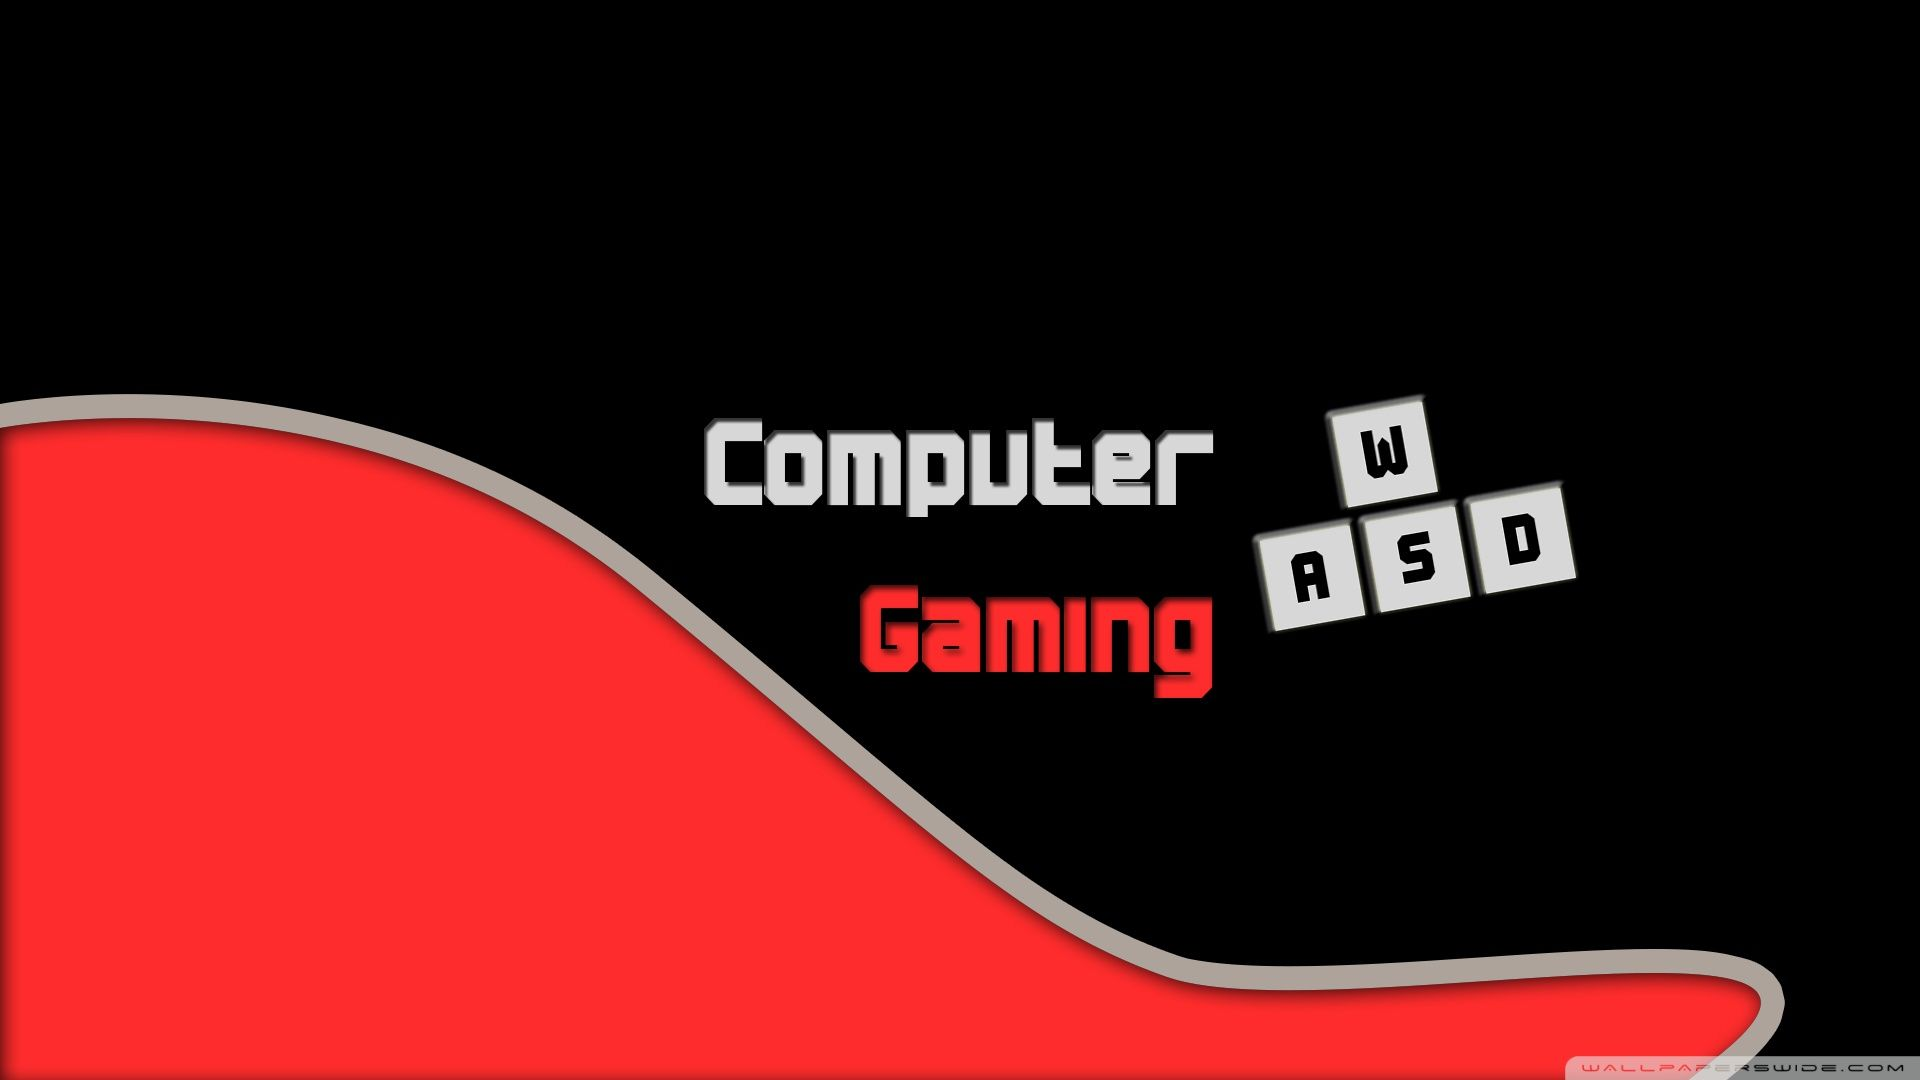 Red Gaming PC Wallpapers - Top Free Red Gaming PC ...